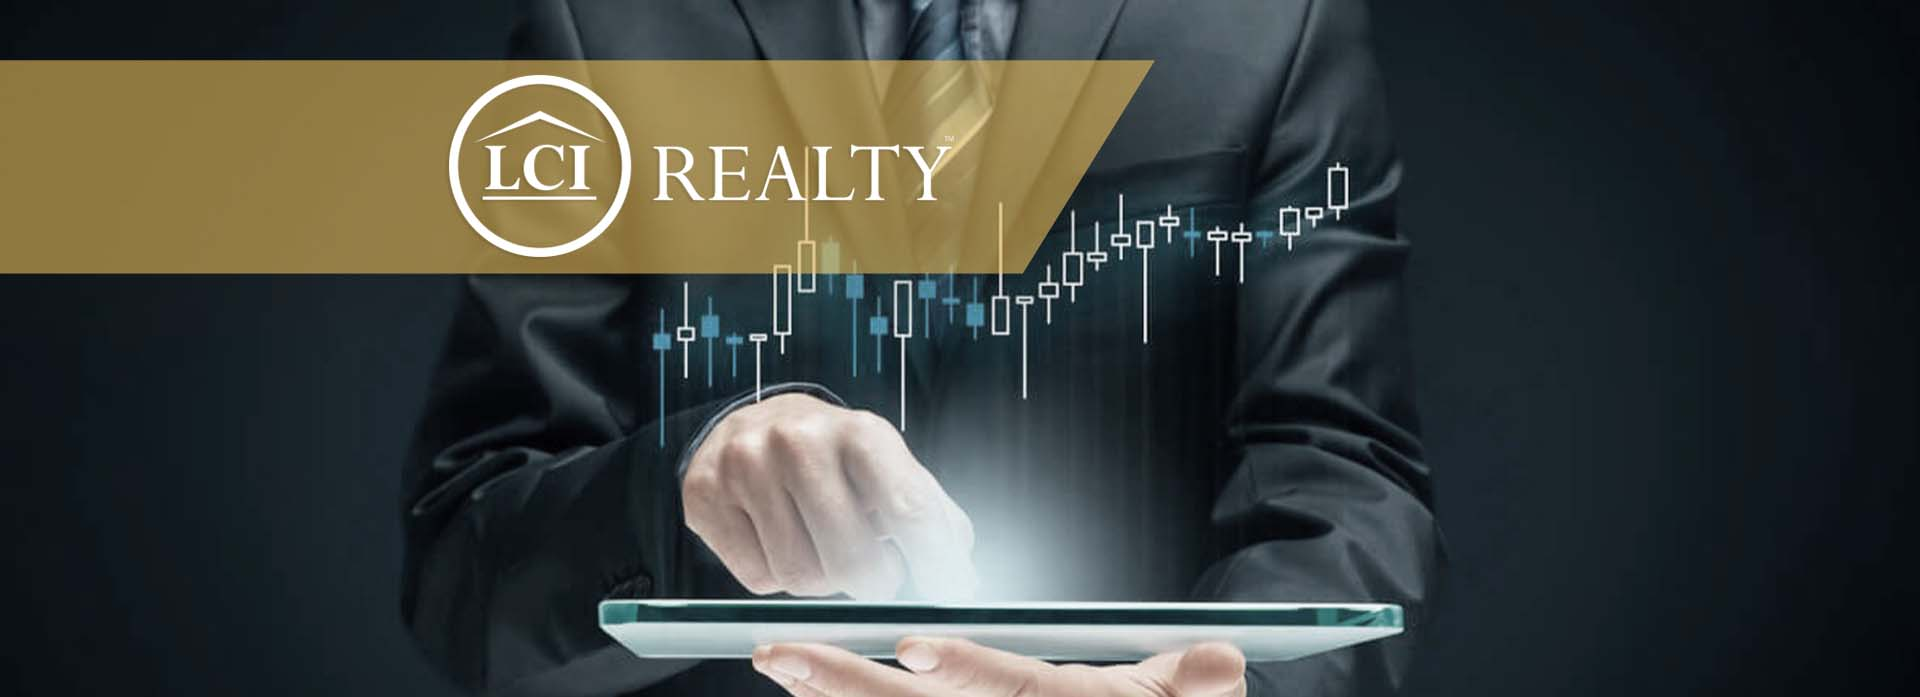 Triple Net Leases Pros and Cons for CRE Investors